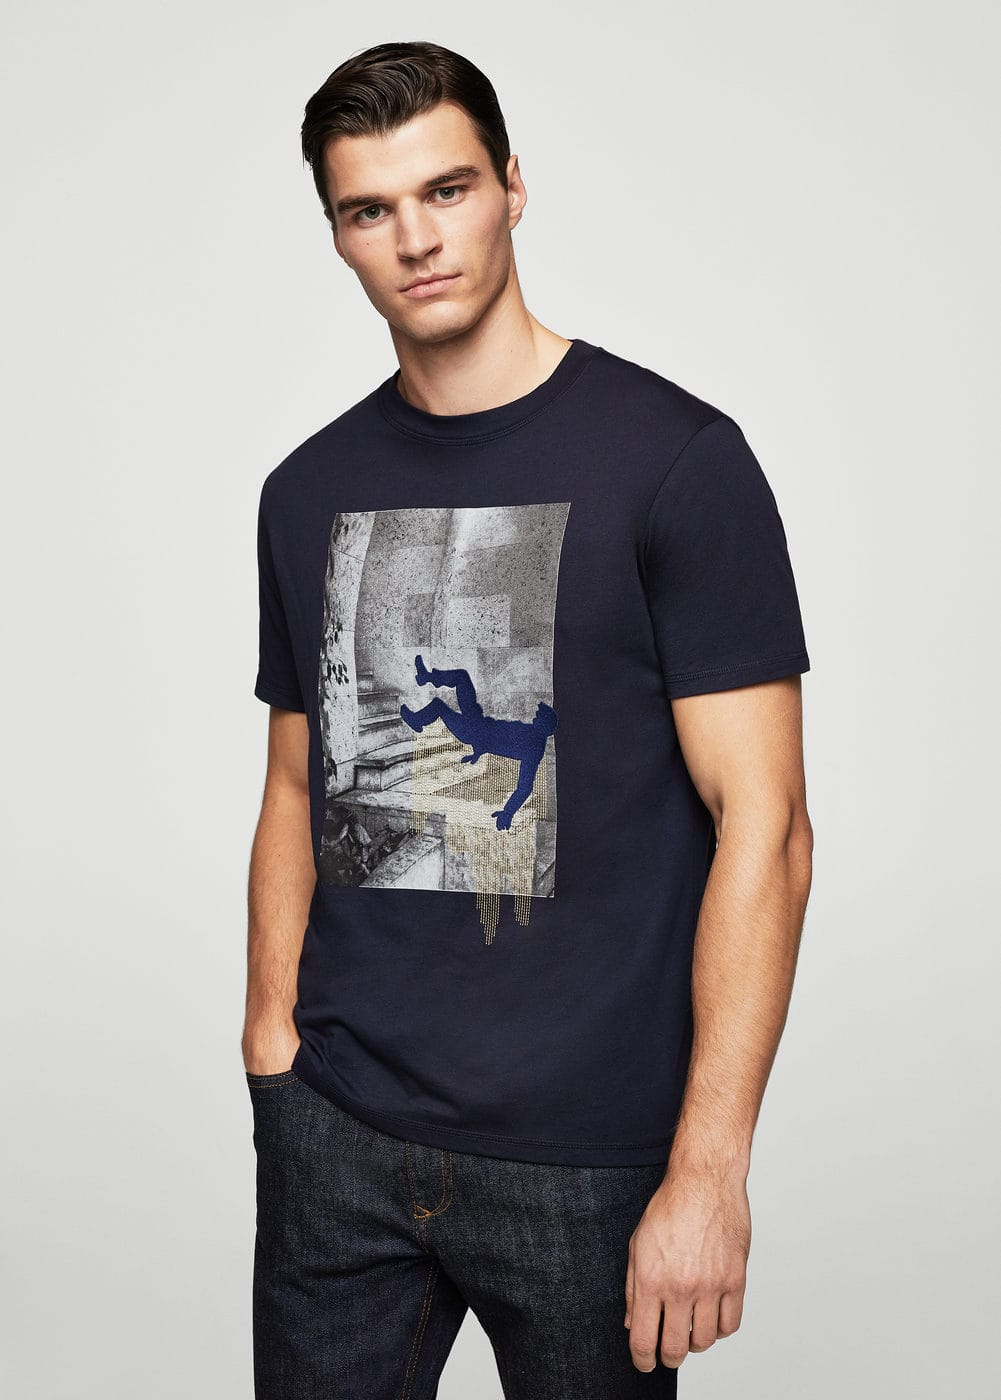 Printed picture cotton t-shirt | MANGO